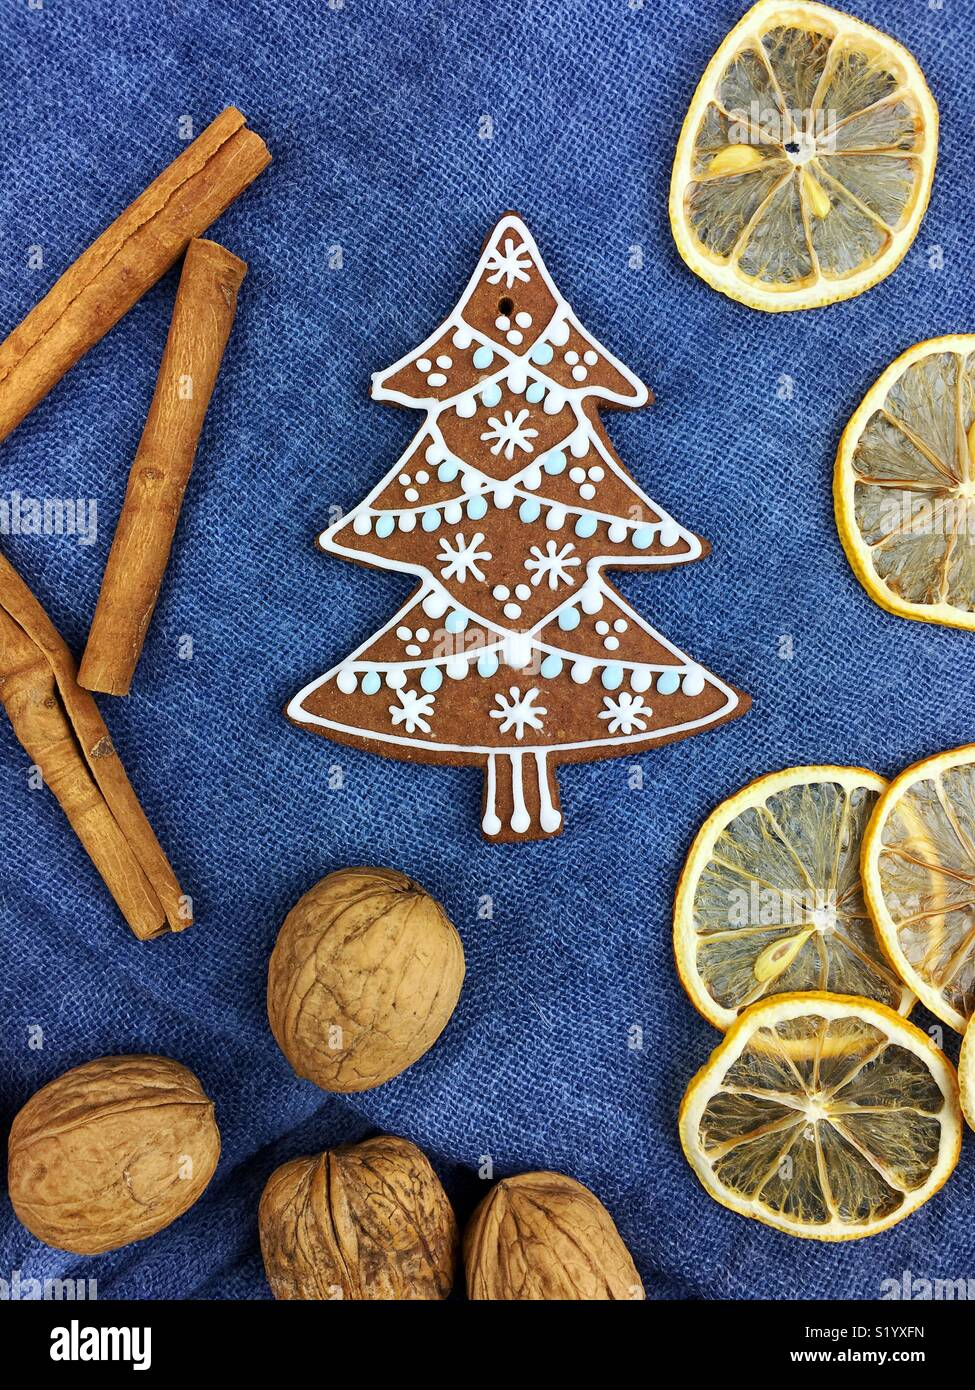 Gingerbread Christmas cookies decoration - Stock Image